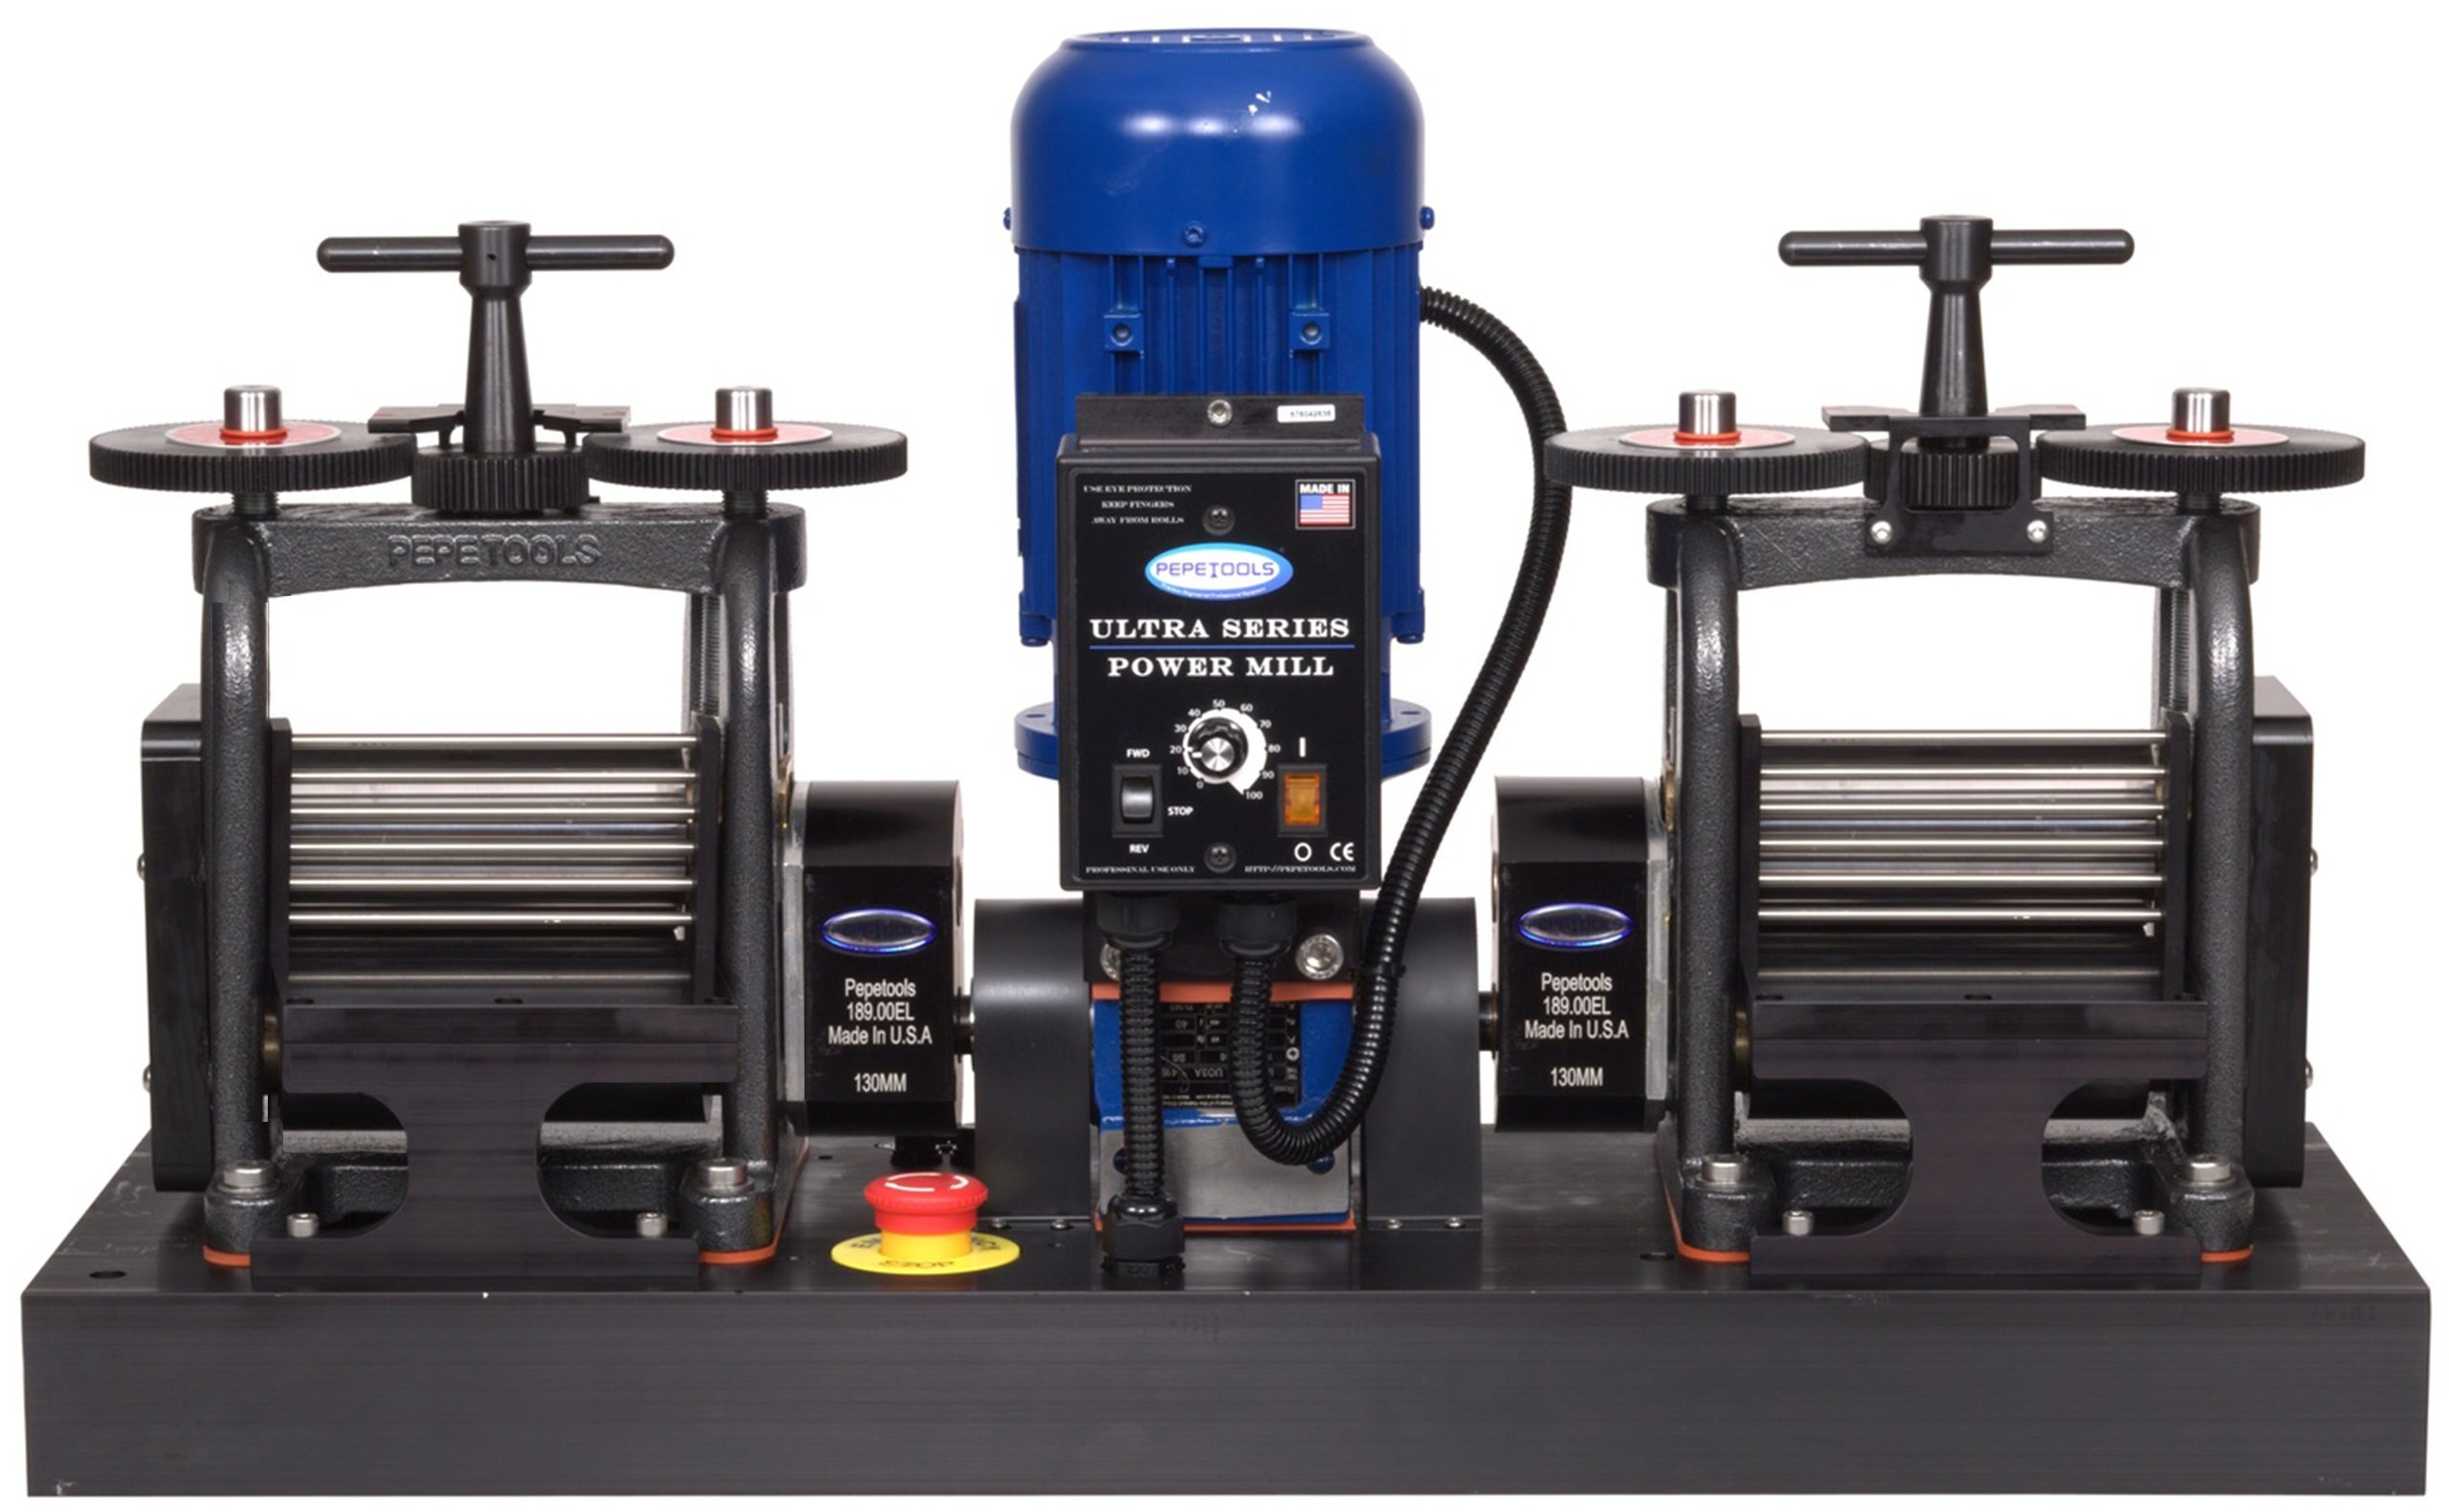 PepeTools Ultra Power Electric Double Flat Rolling Mills 130mm, MADE IN THE USA by Ultra Power